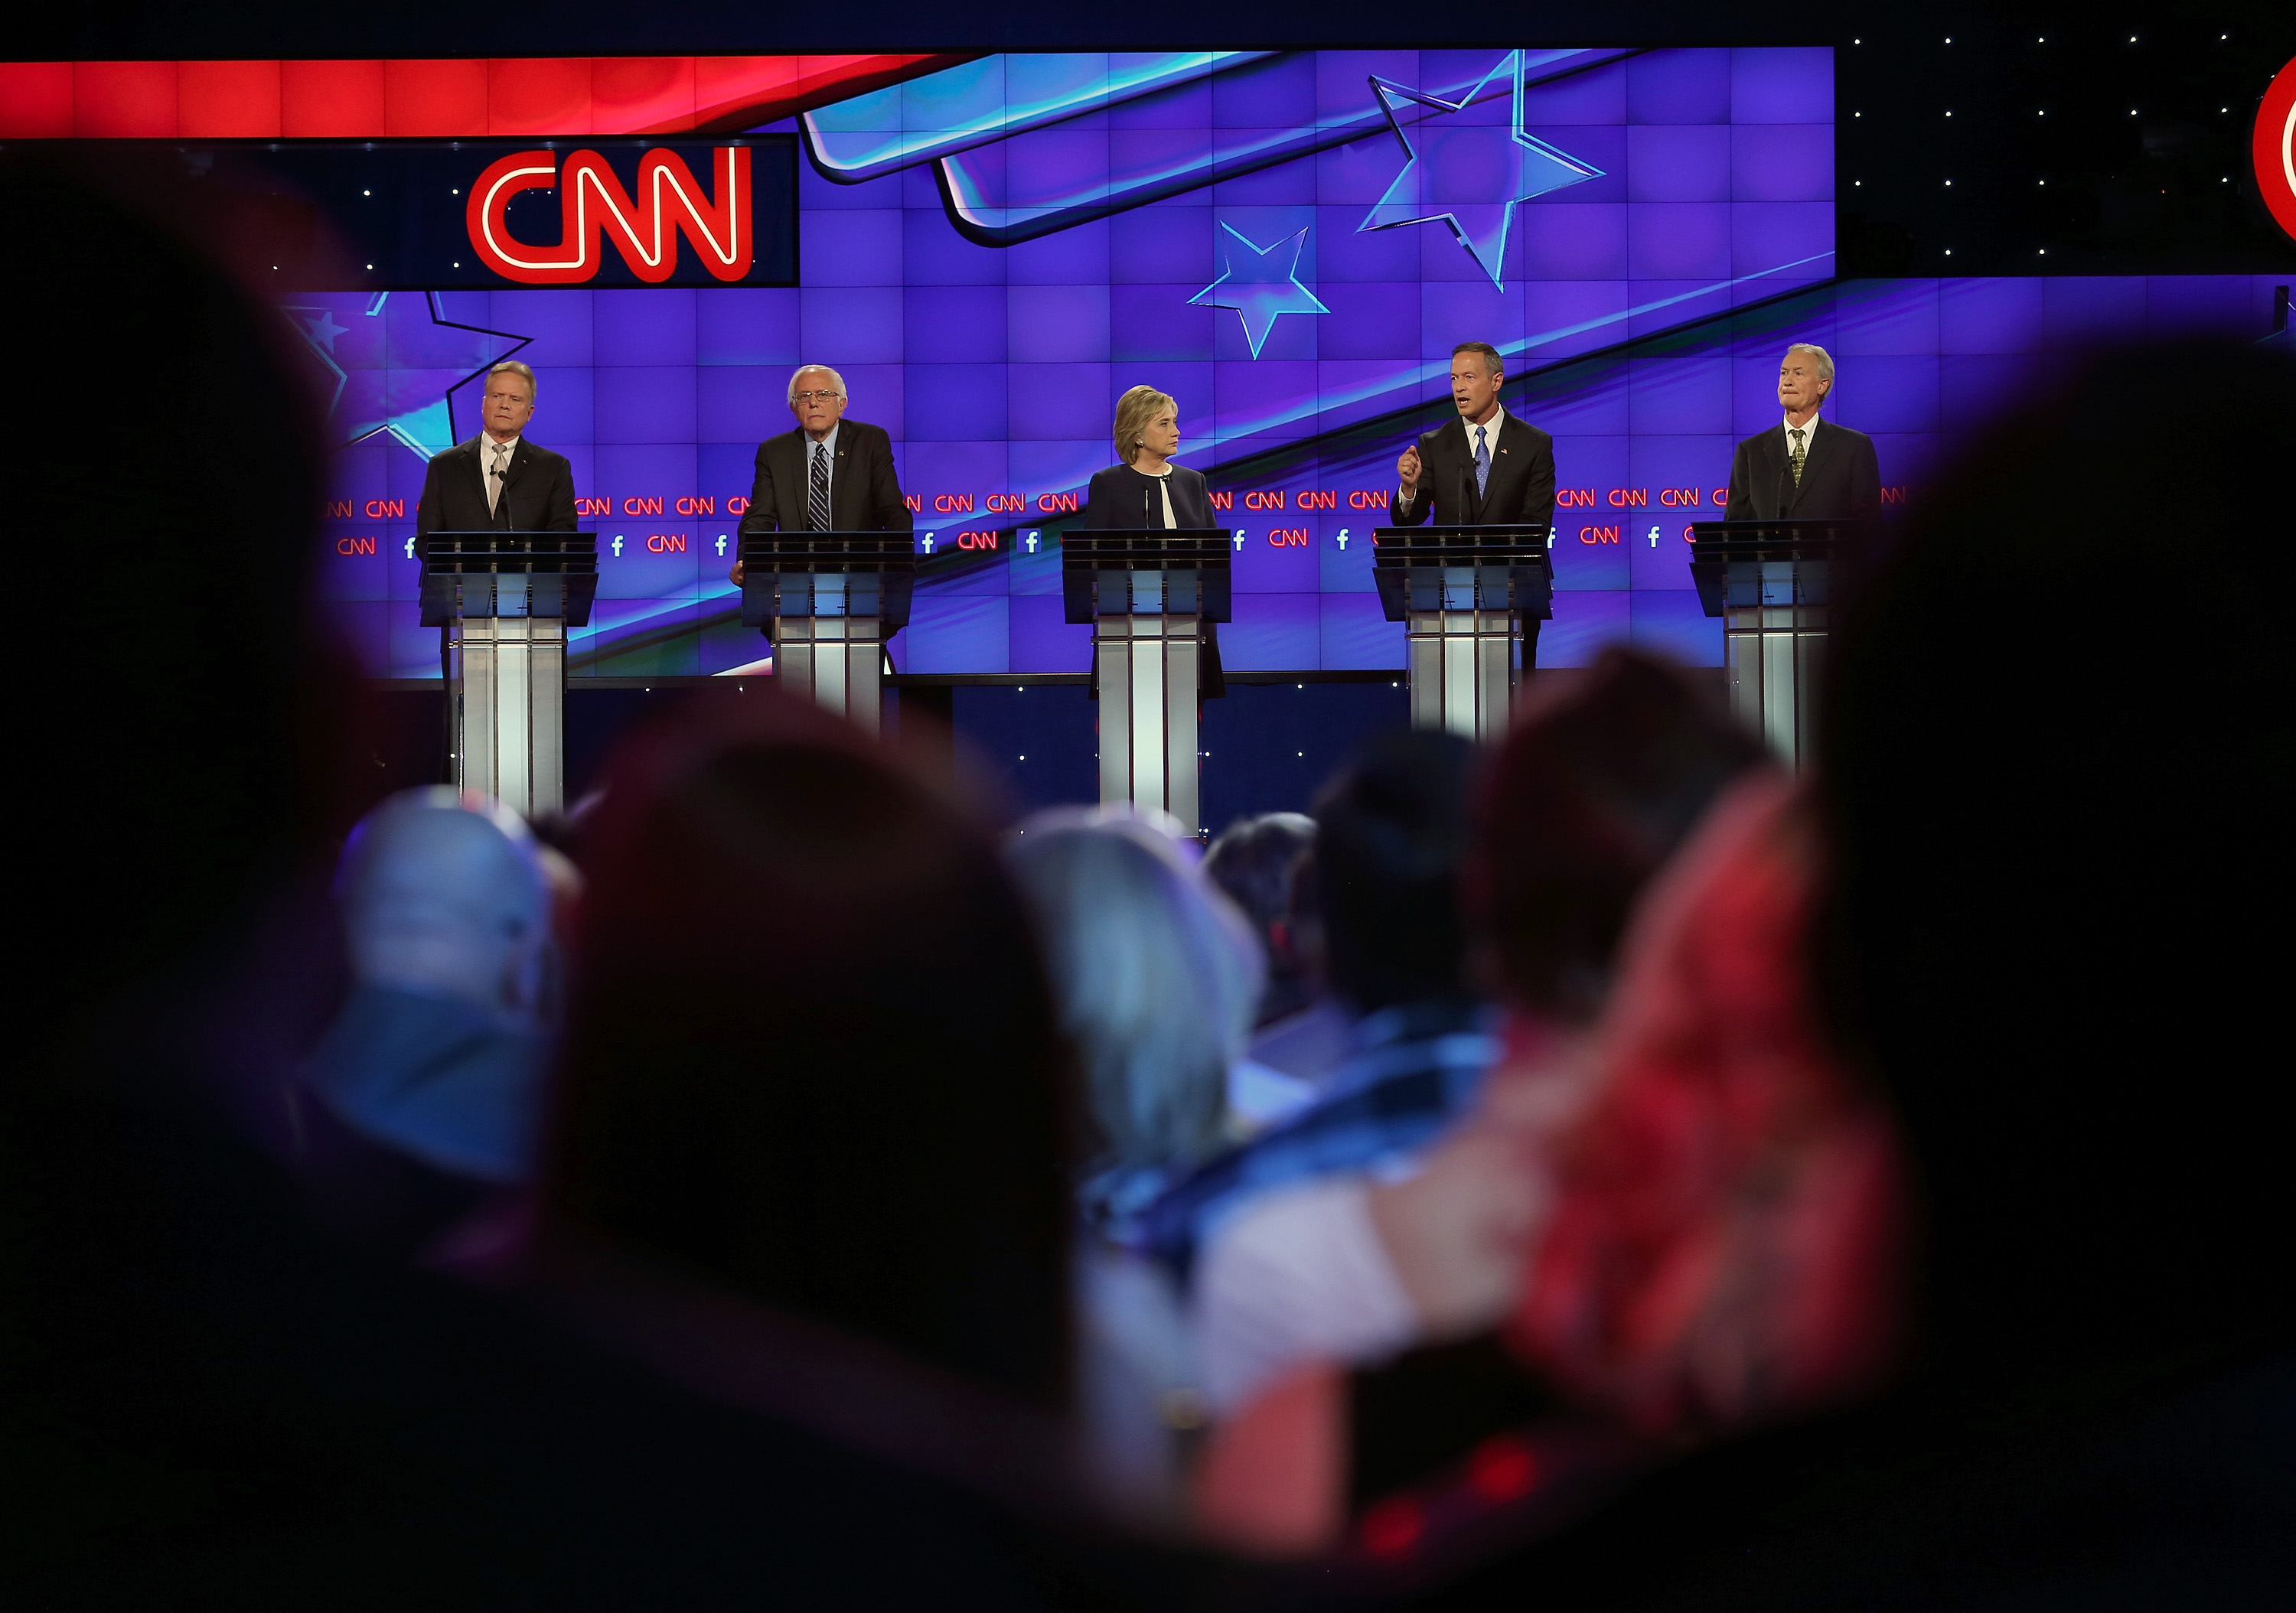 Democratic presidential candidates Jim Webb, Sen. Bernie Sanders (I-VT), Hillary Clinton, Martin O'Malley and Lincoln Chafee take part in presidential debate sponsored by CNN and Facebook at Wynn Las Vegas on October 13, 2015 in Las Vegas, Nevada. (Getty)